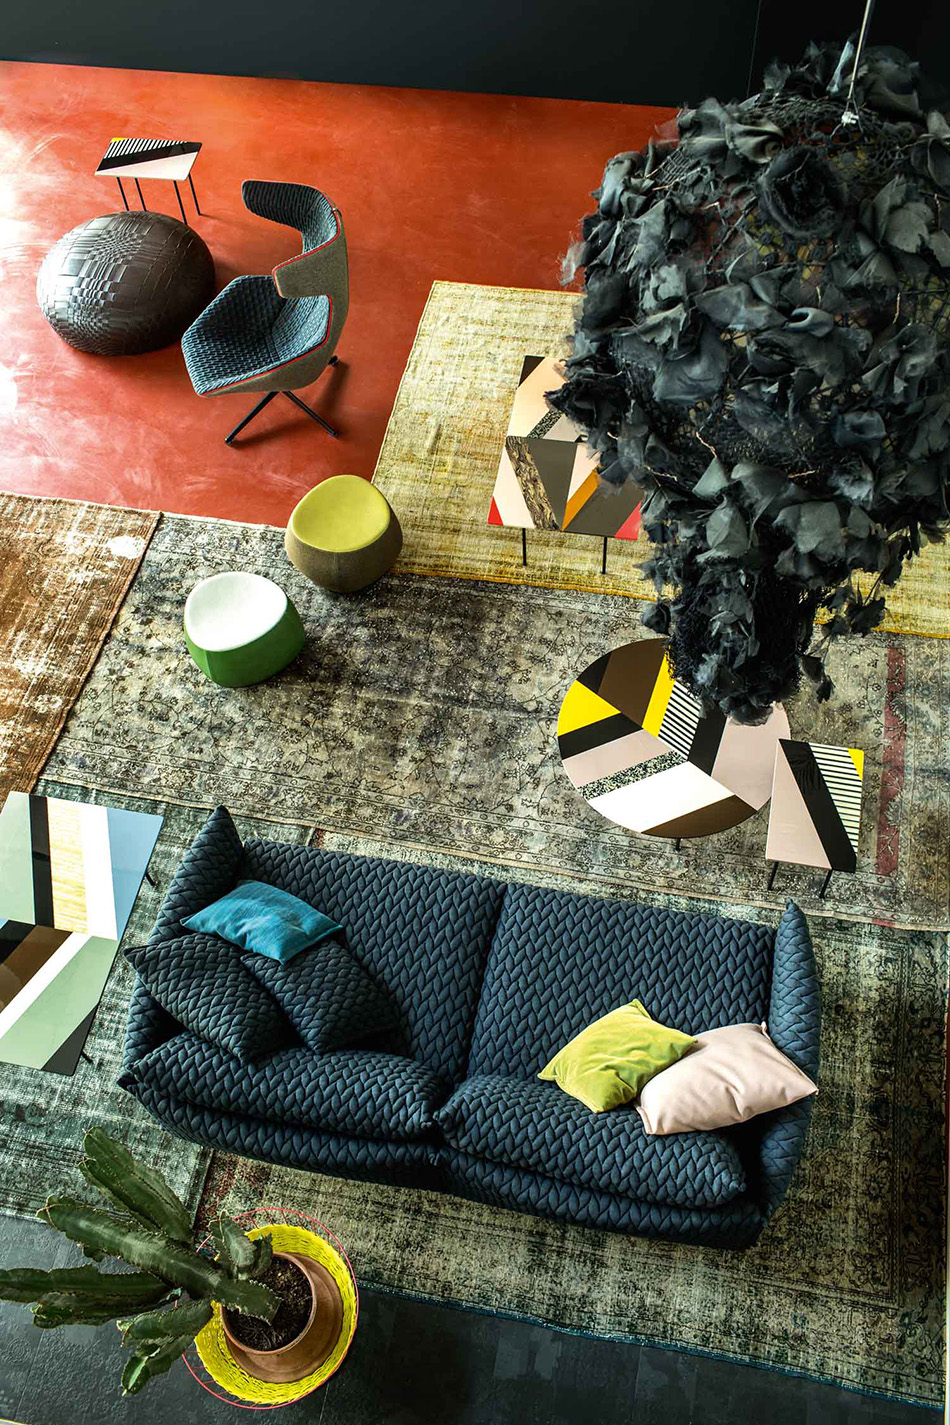 Moroso-Product-Shot-at-Patrizia-Moroso-House-Yellowtrace-12